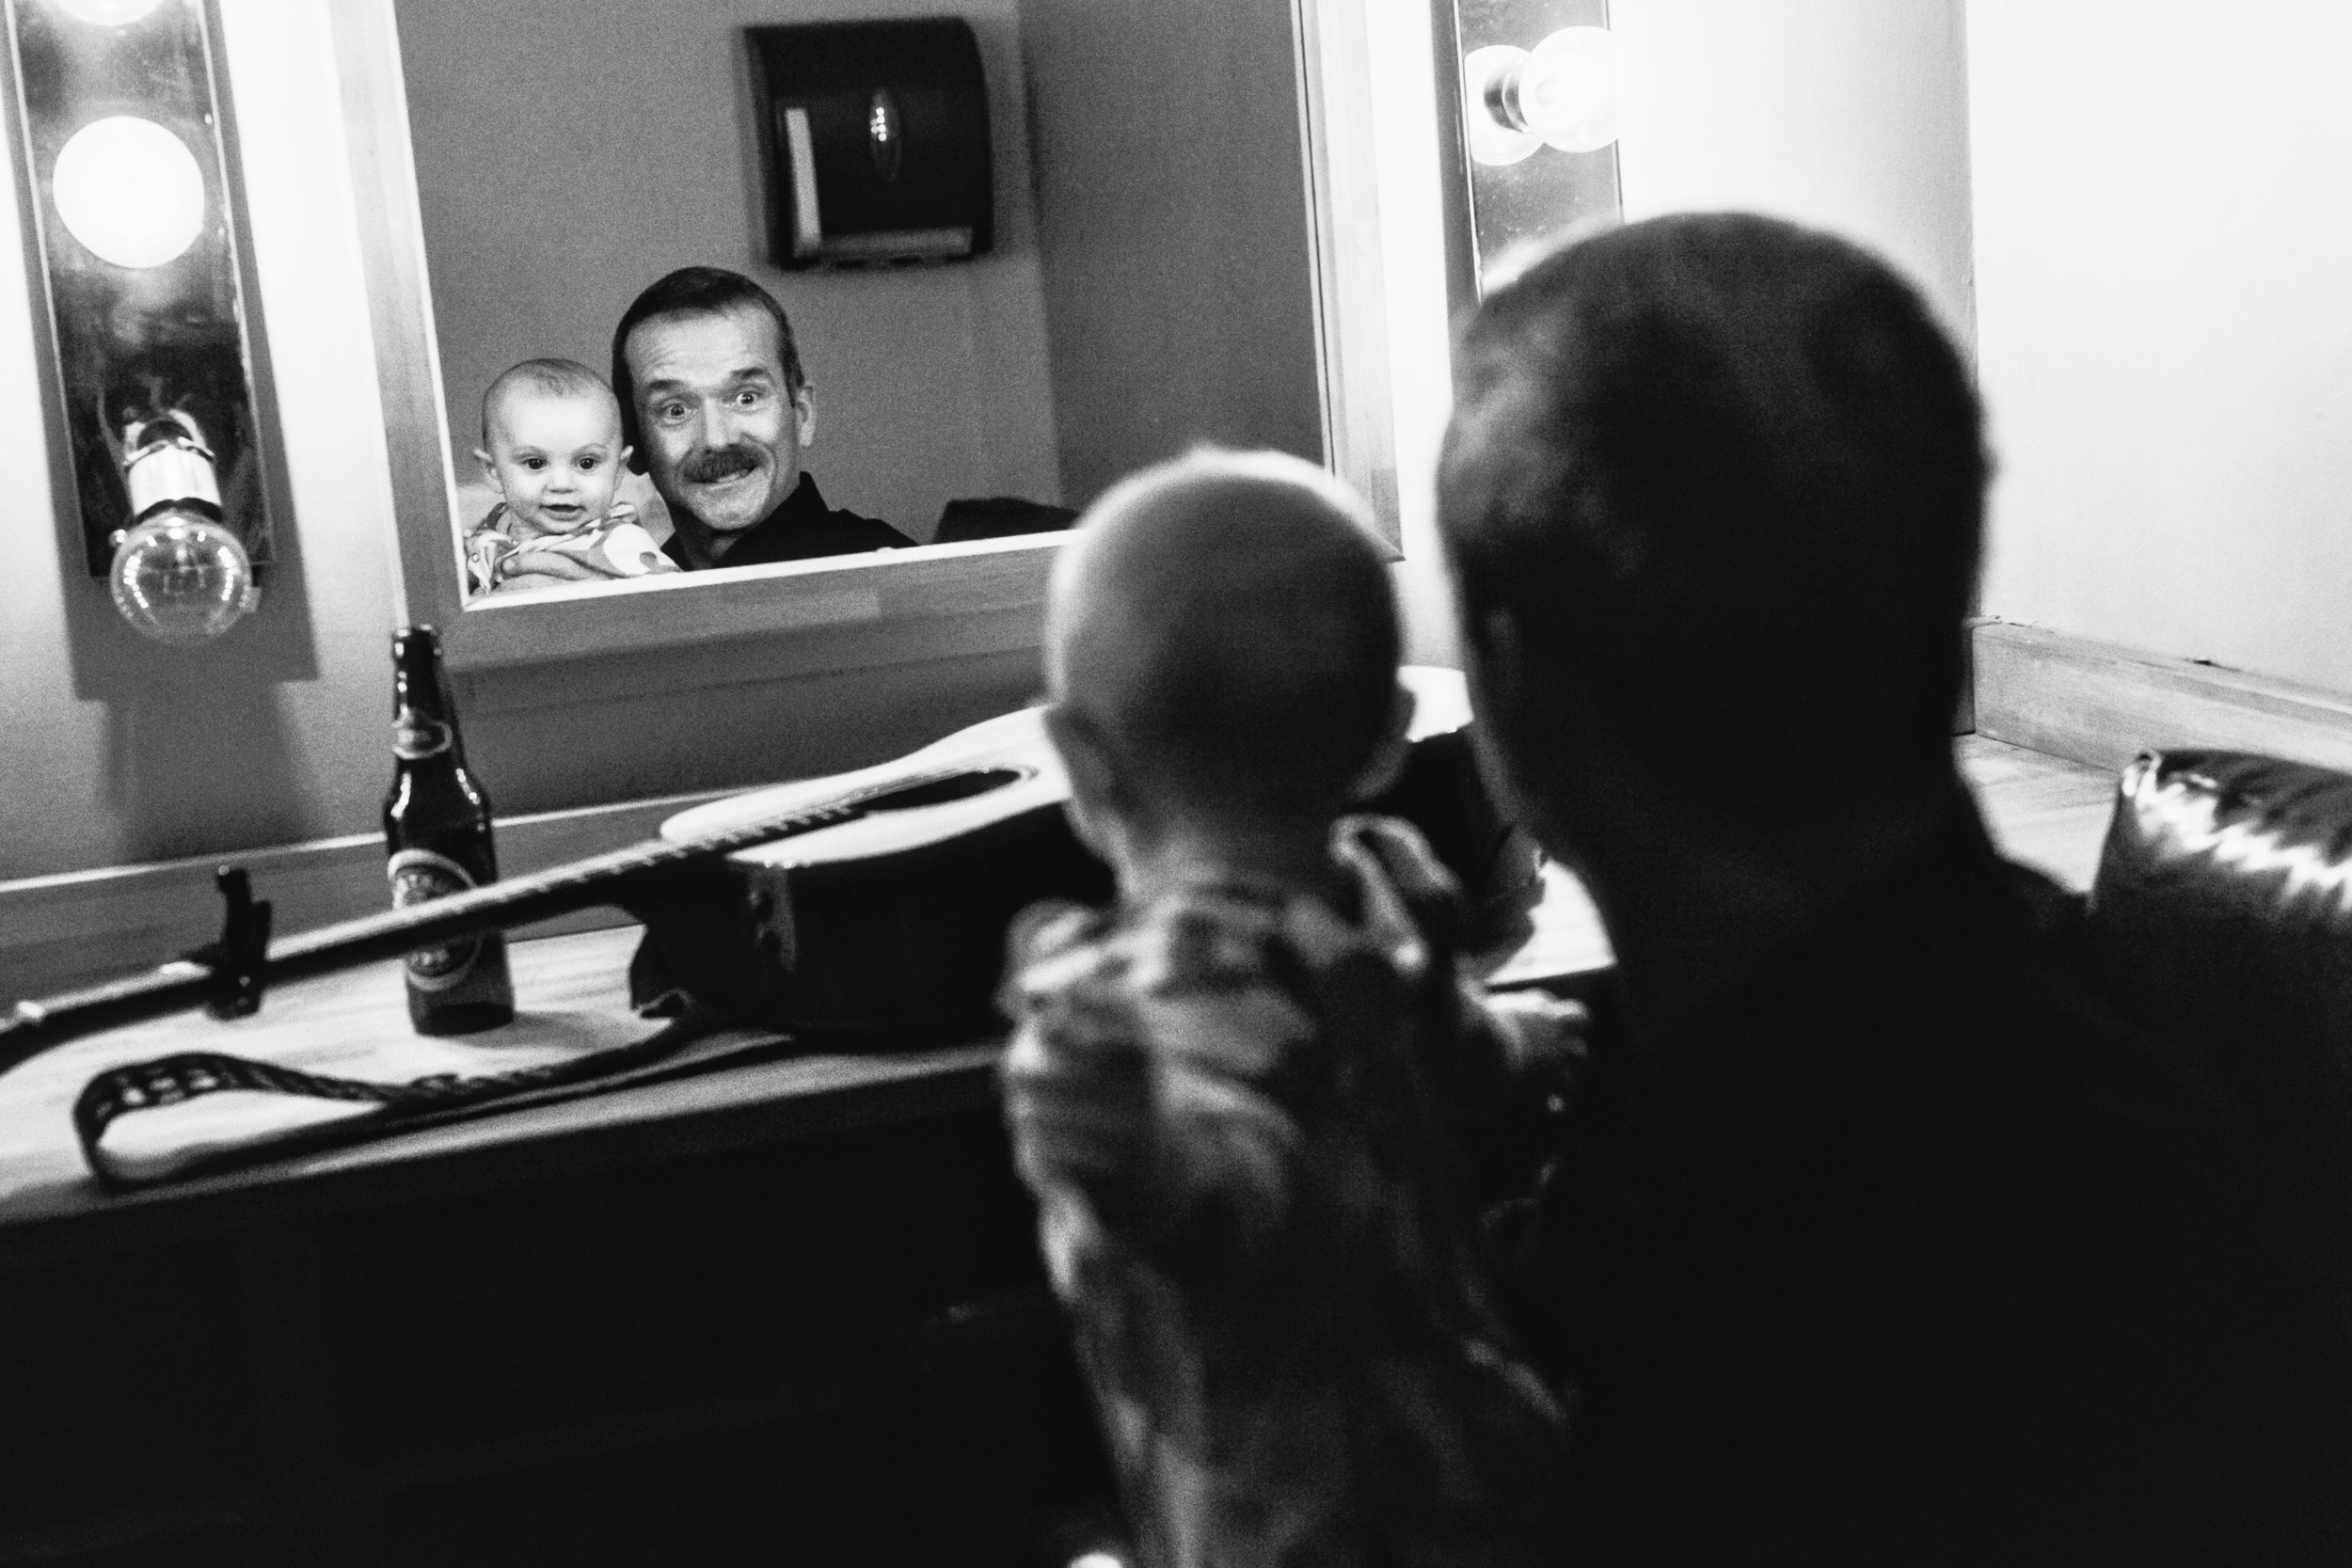 Canadian Astronaut and Musician Col. Chris Hadfield jokes with baby. (2017)